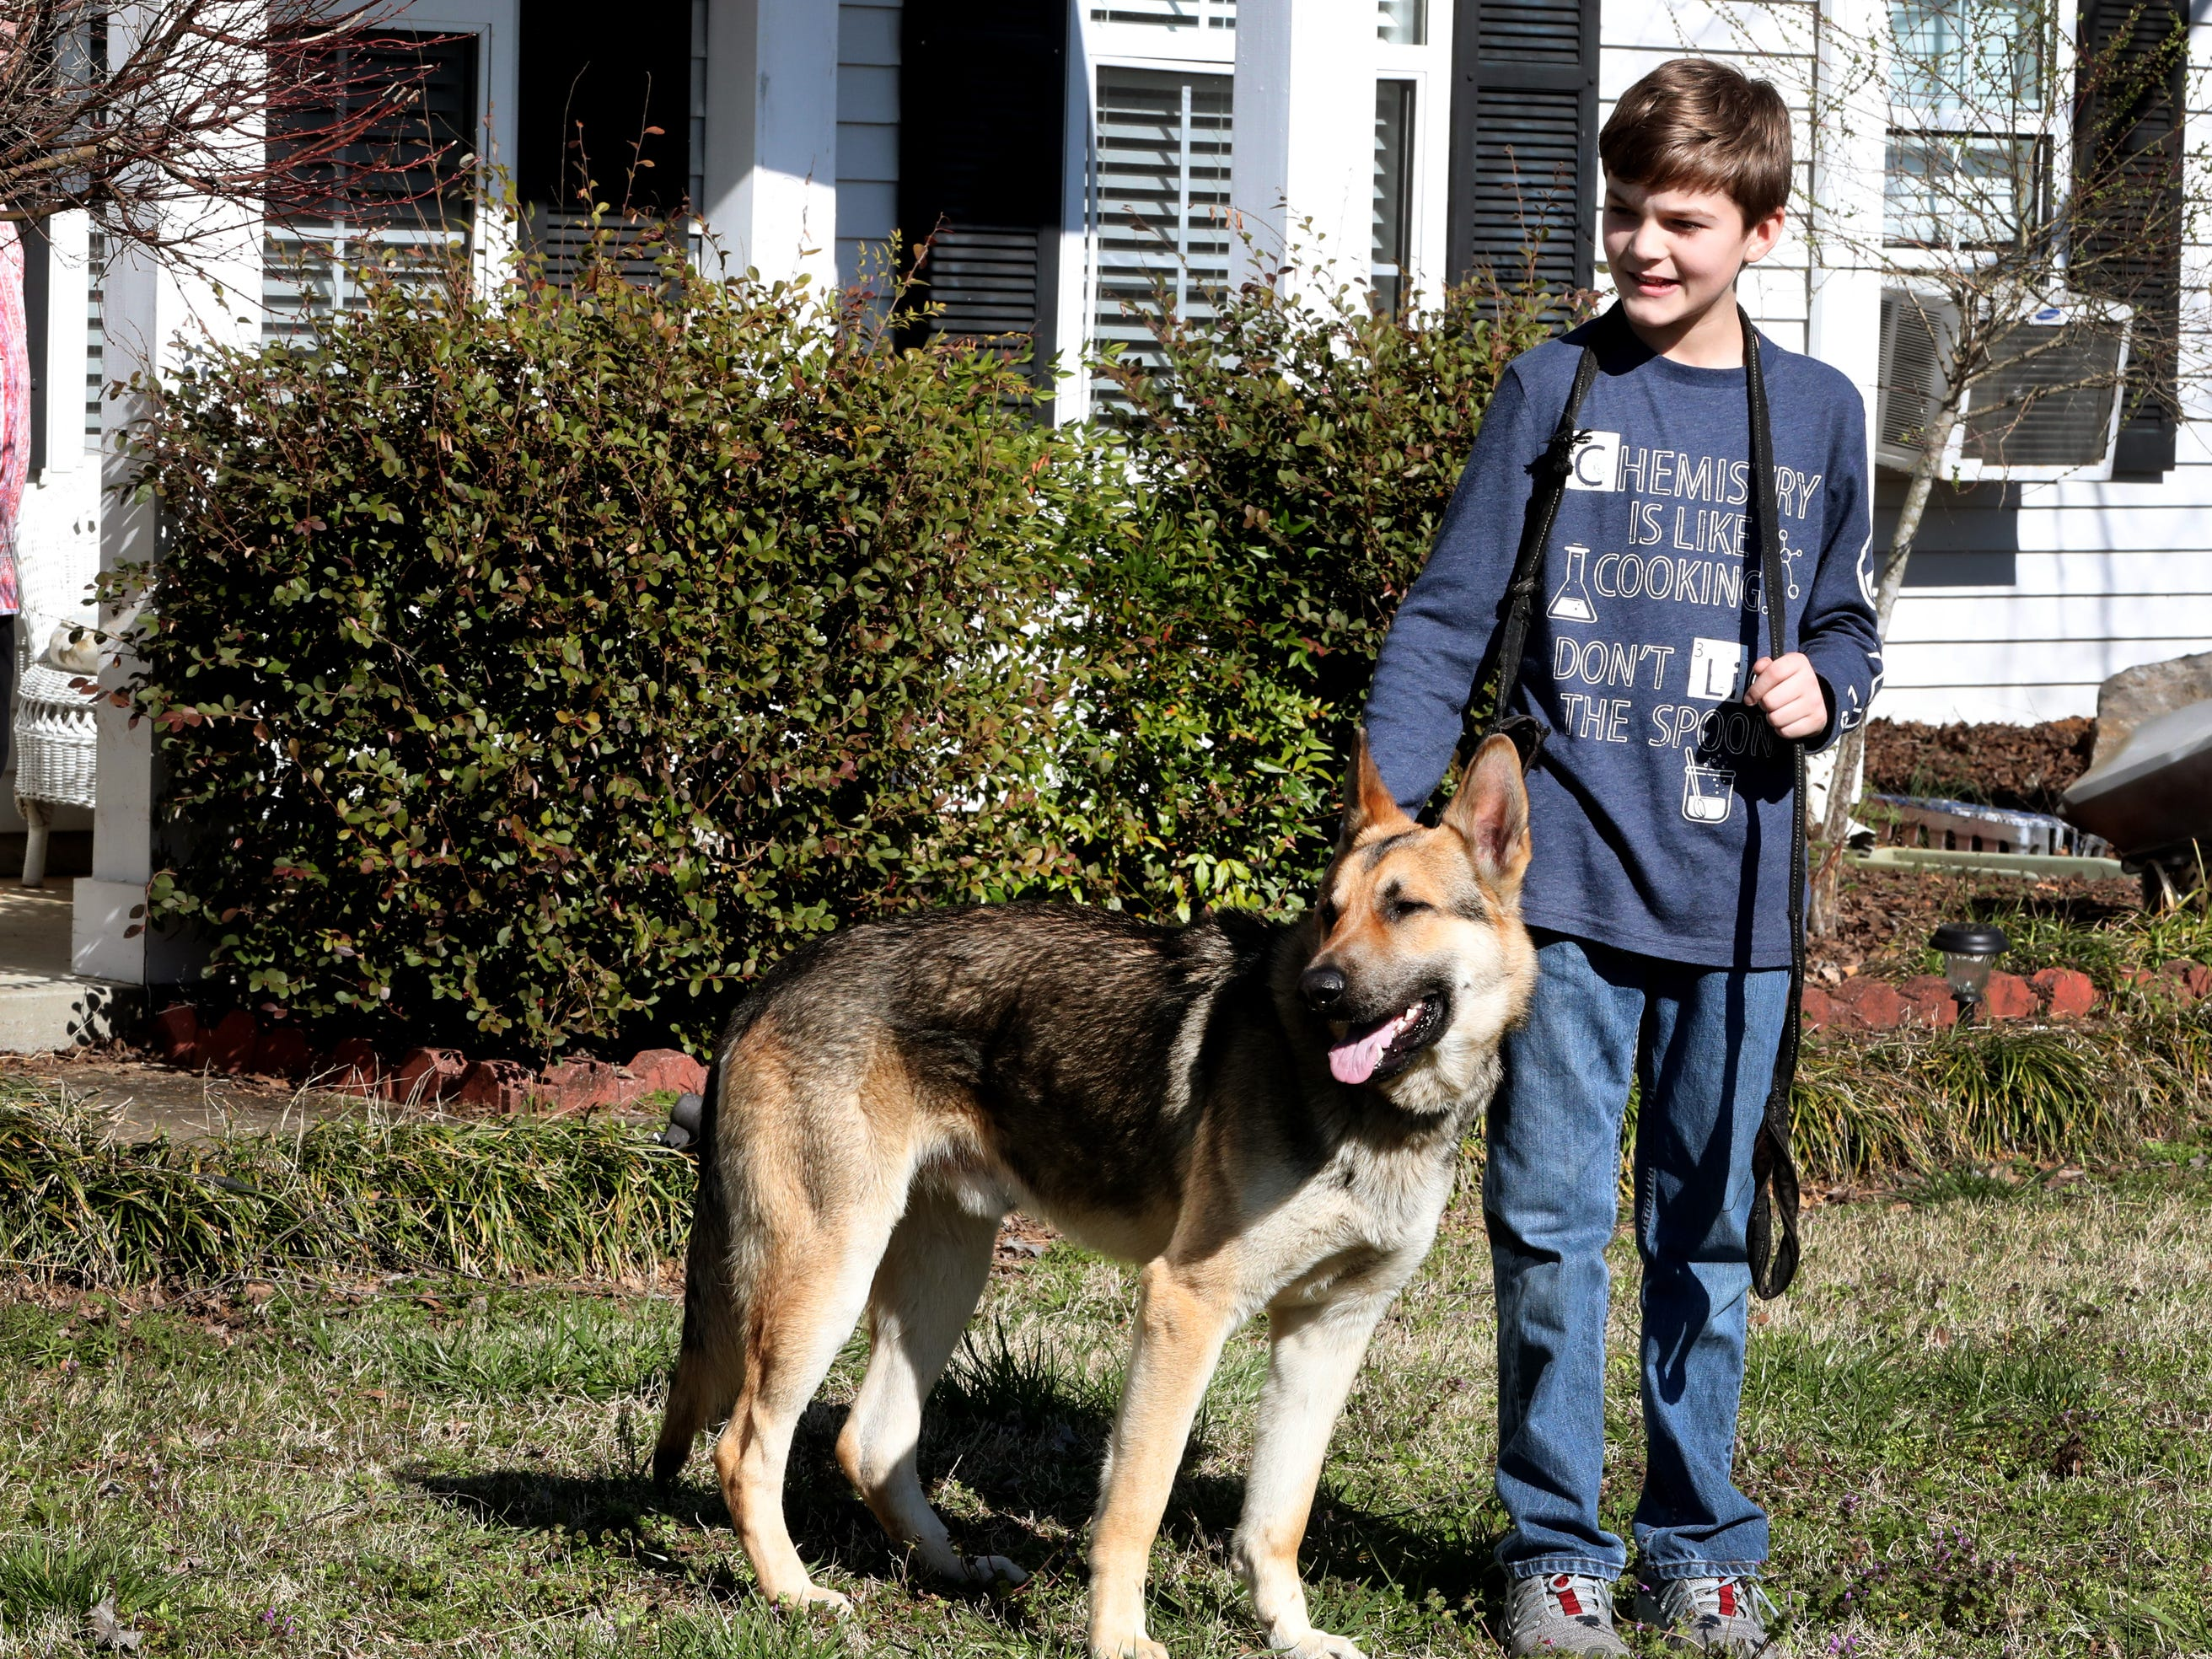 Justin White, 10, was reunited with his dog Goblin on Tuesday, March 19, 2019, after the dog was returned.